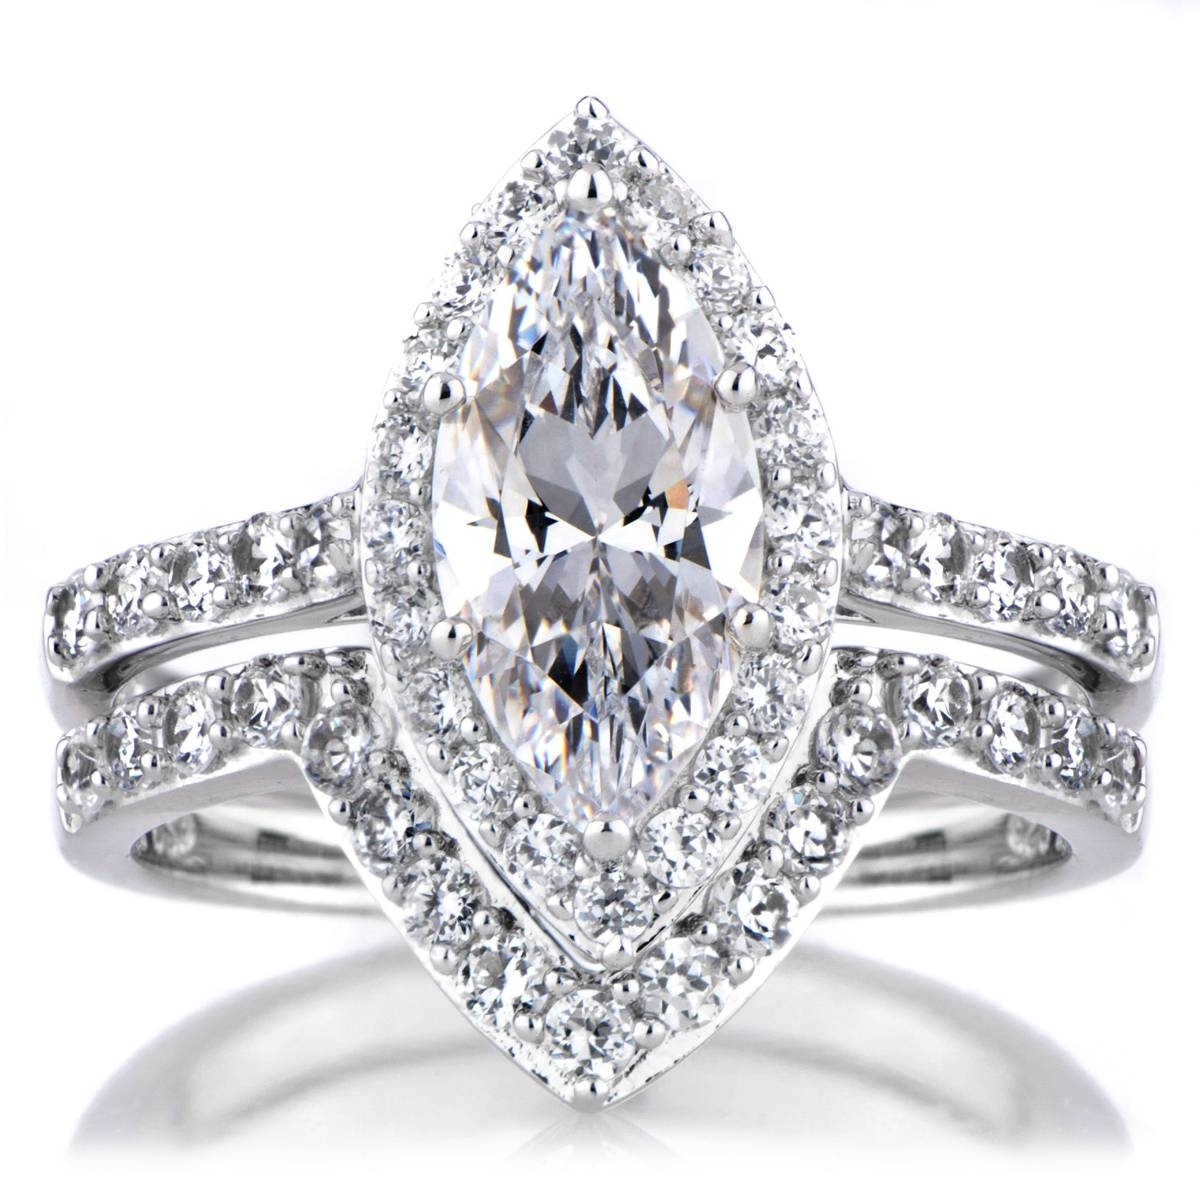 Padgett's Marquise Cut Cz Engagement Ring And Guard Set Intended For Marquis Wedding Bands (View 2 of 15)